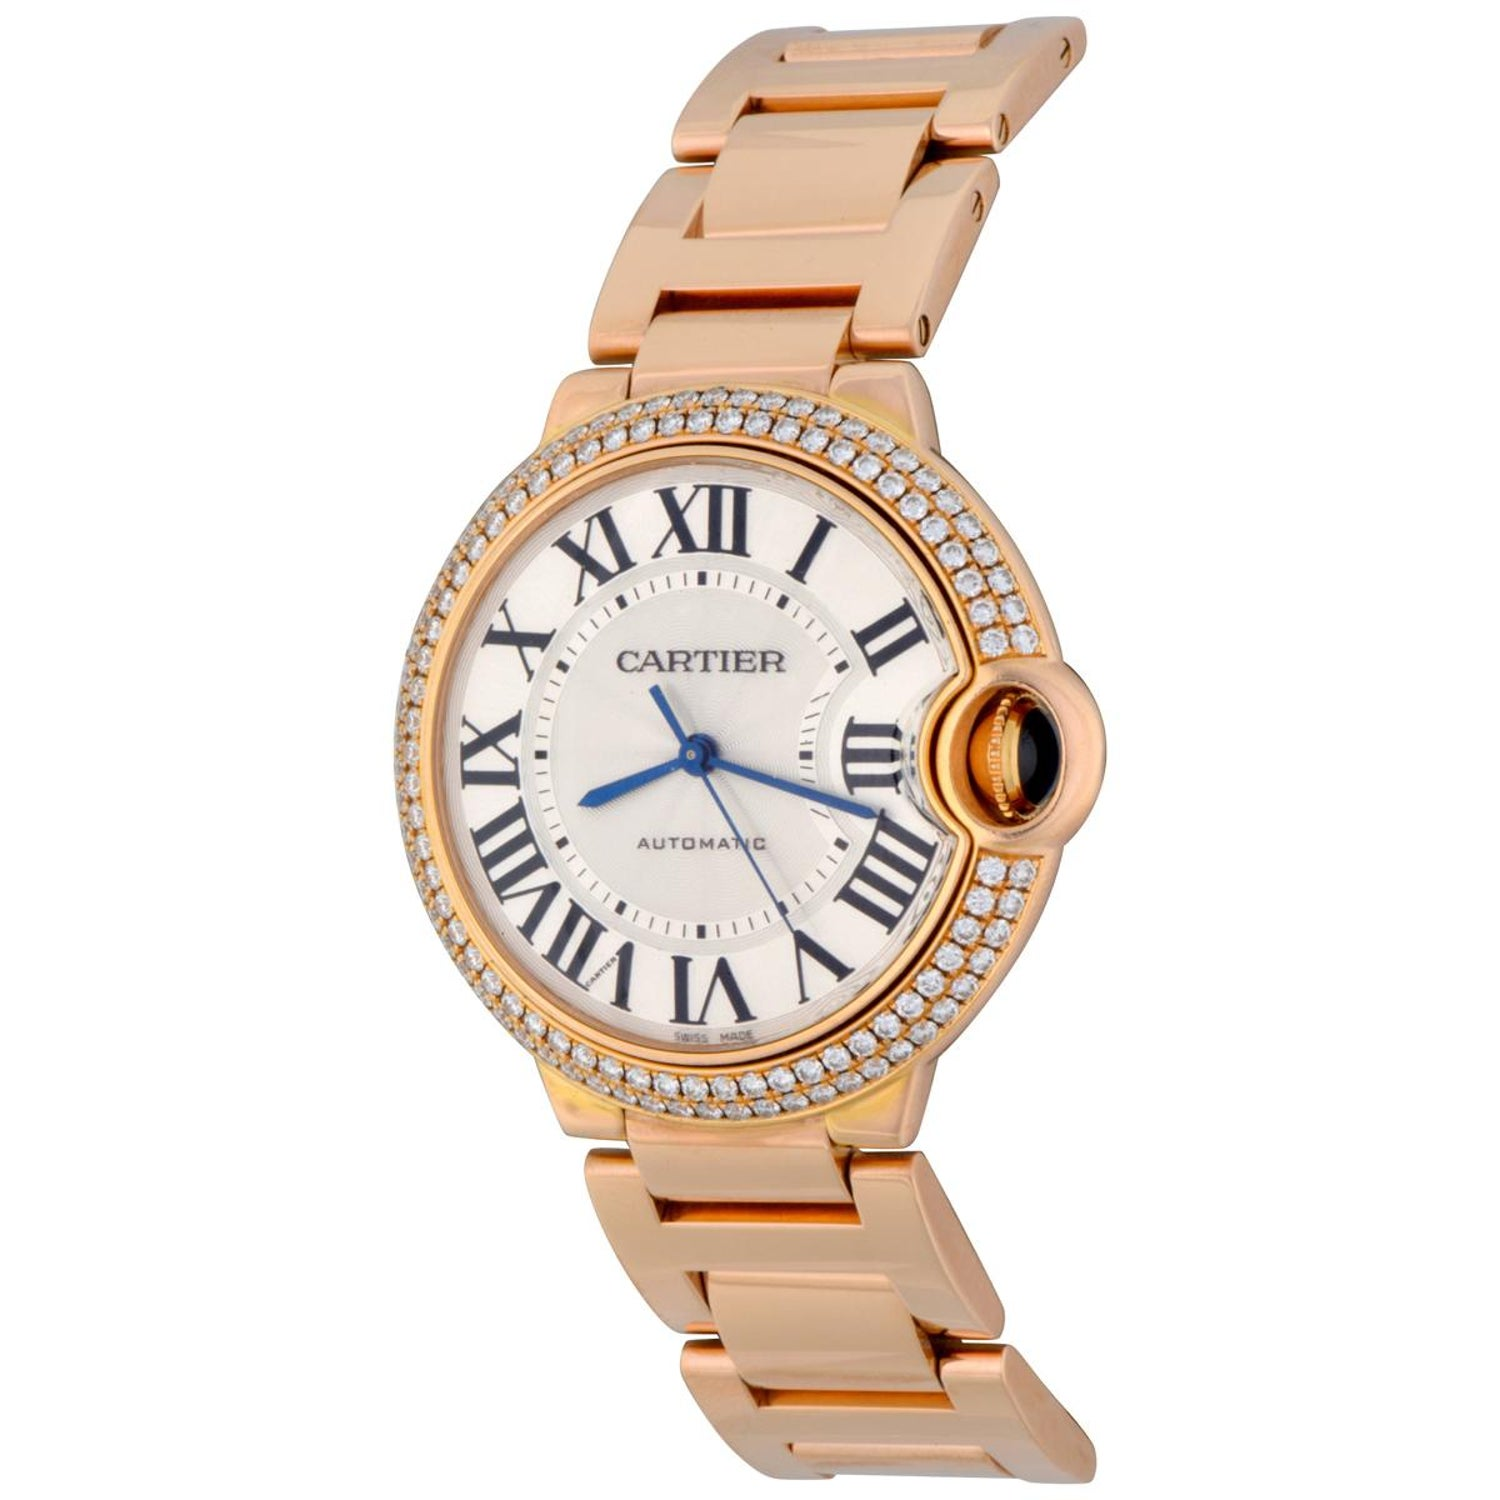 123fac1436c6 Cartier Rose Gold Diamond Bezel Ballon Bleu Automatic Wristwatch at 1stdibs